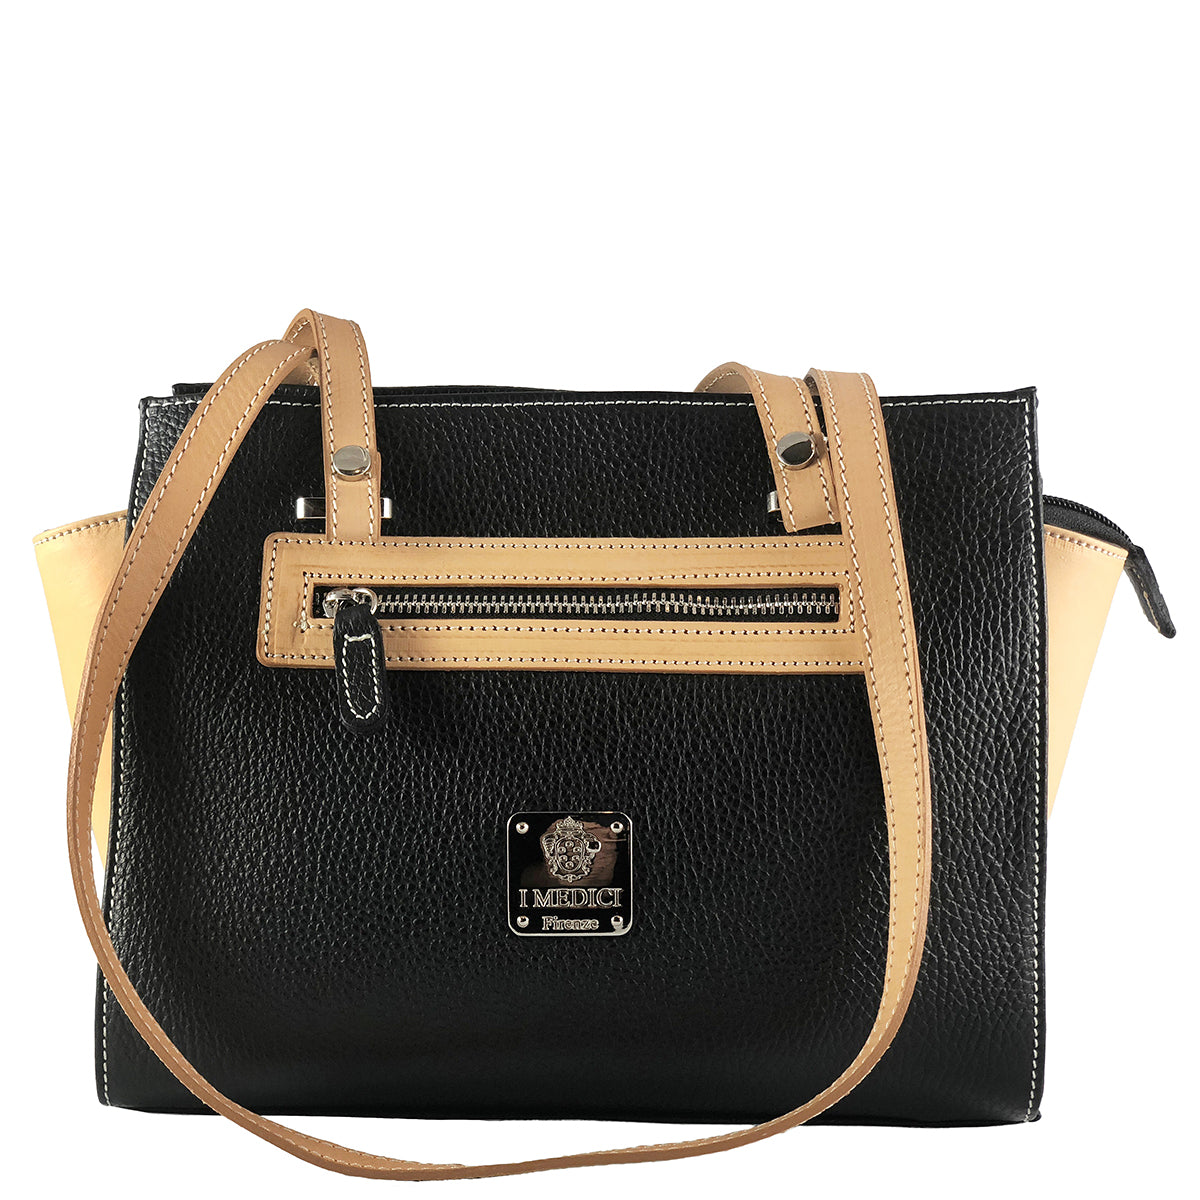 I Medici 806 Italian Leather Top Handle Bag